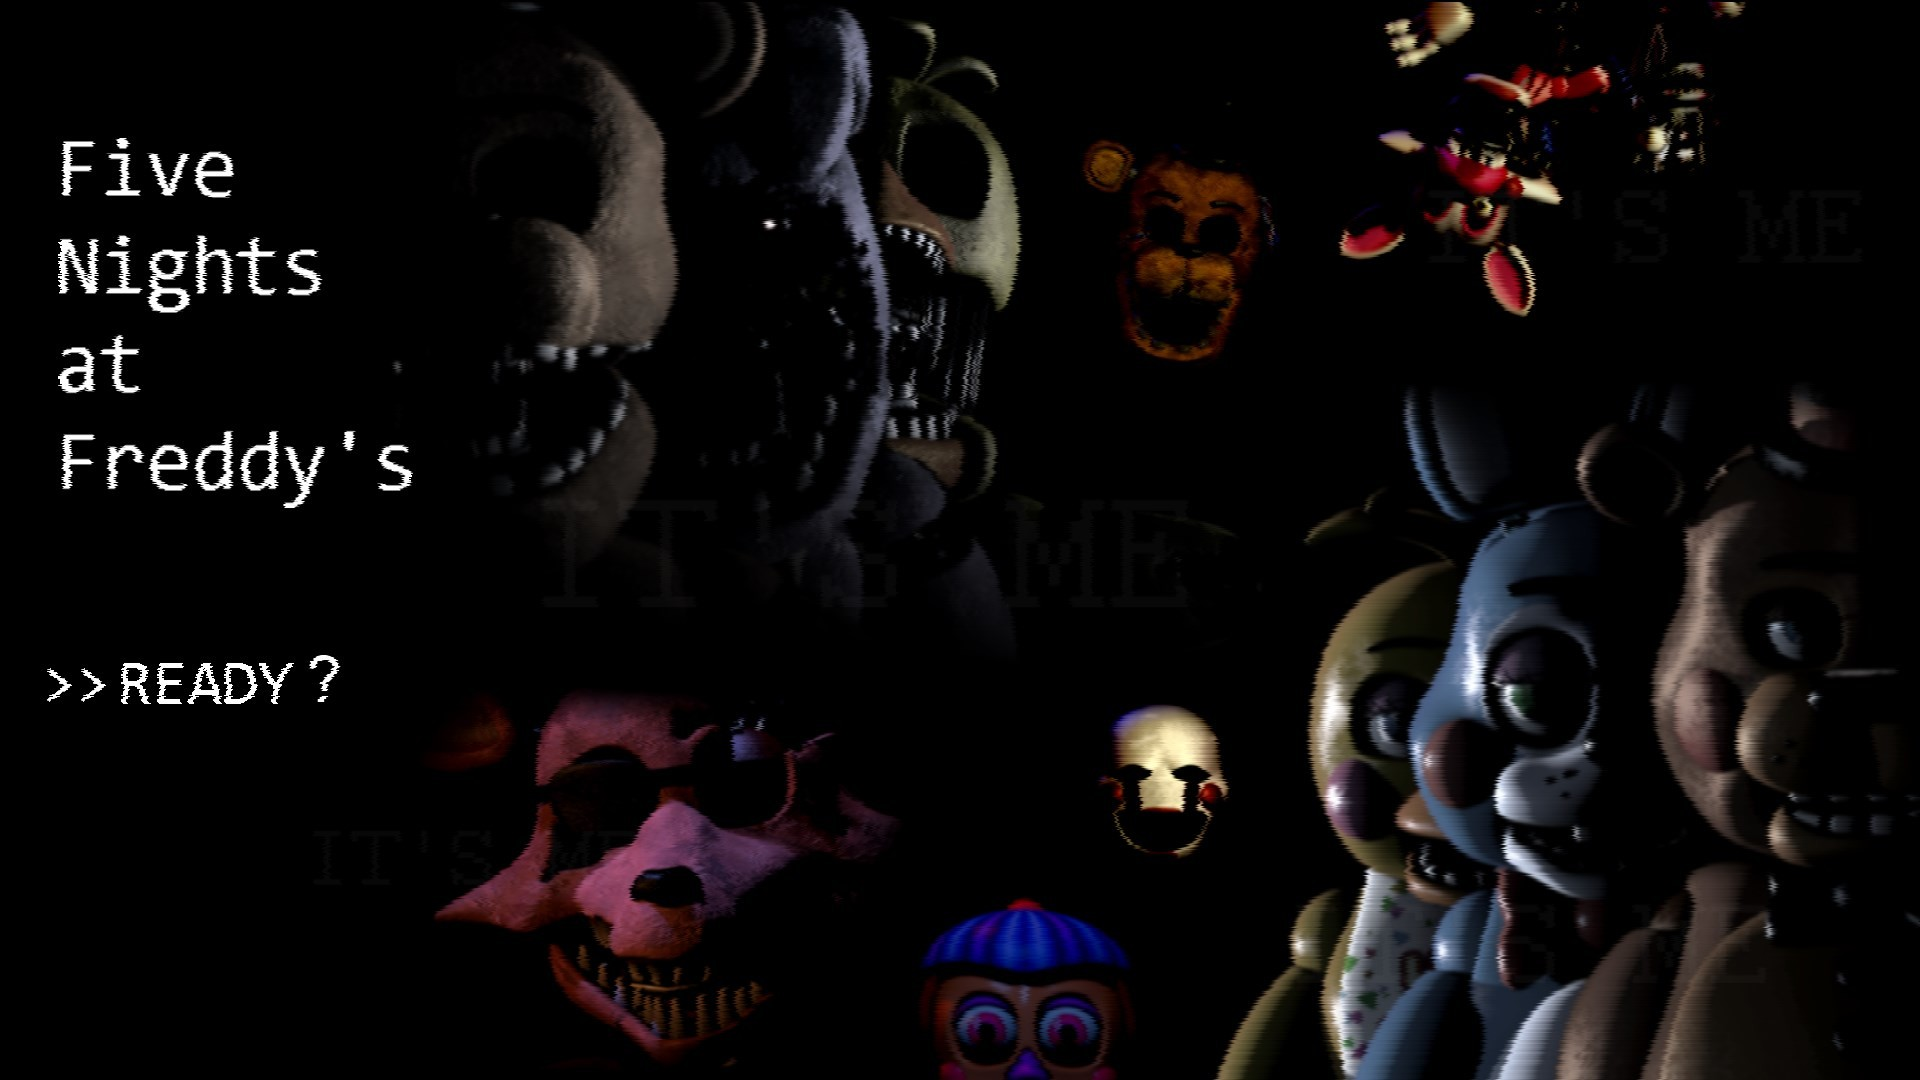 1920x1080 five nights at freddys 5 wallpaper ...